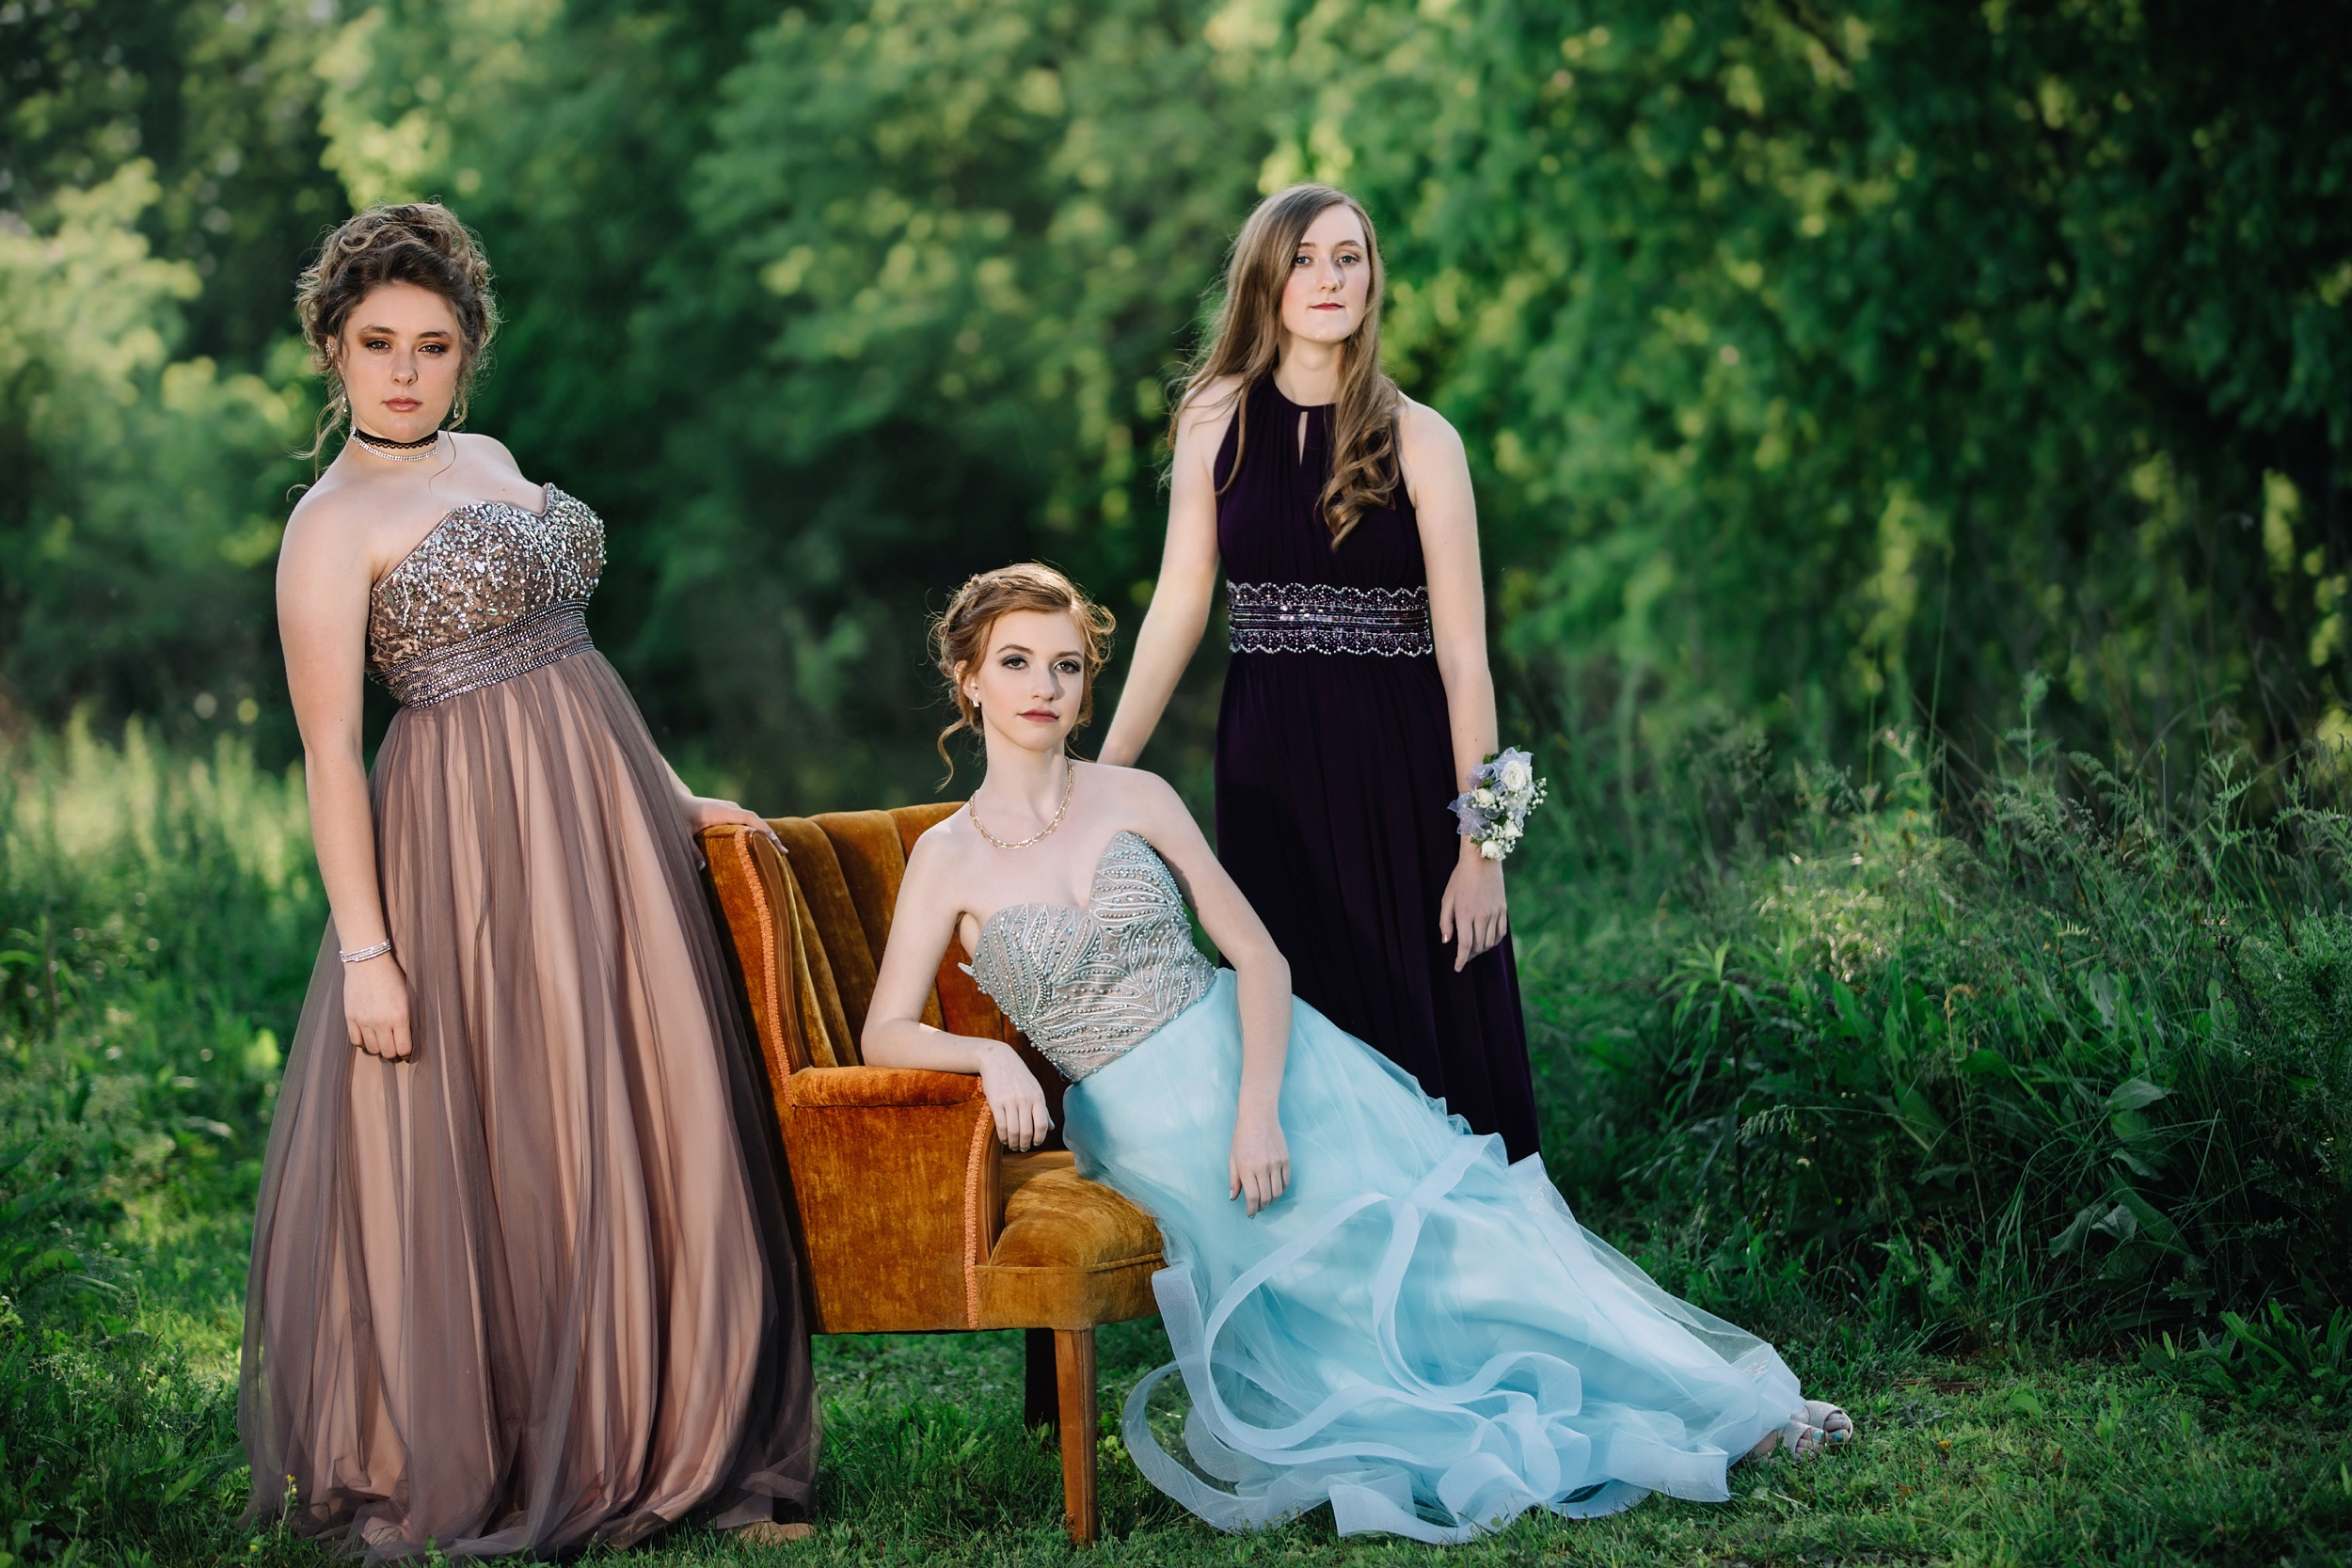 Prom mini sessions with friends, combined sessions, editorial Vanity Fair and Vogue looks...what do you want to do with your custom senior portrait session?